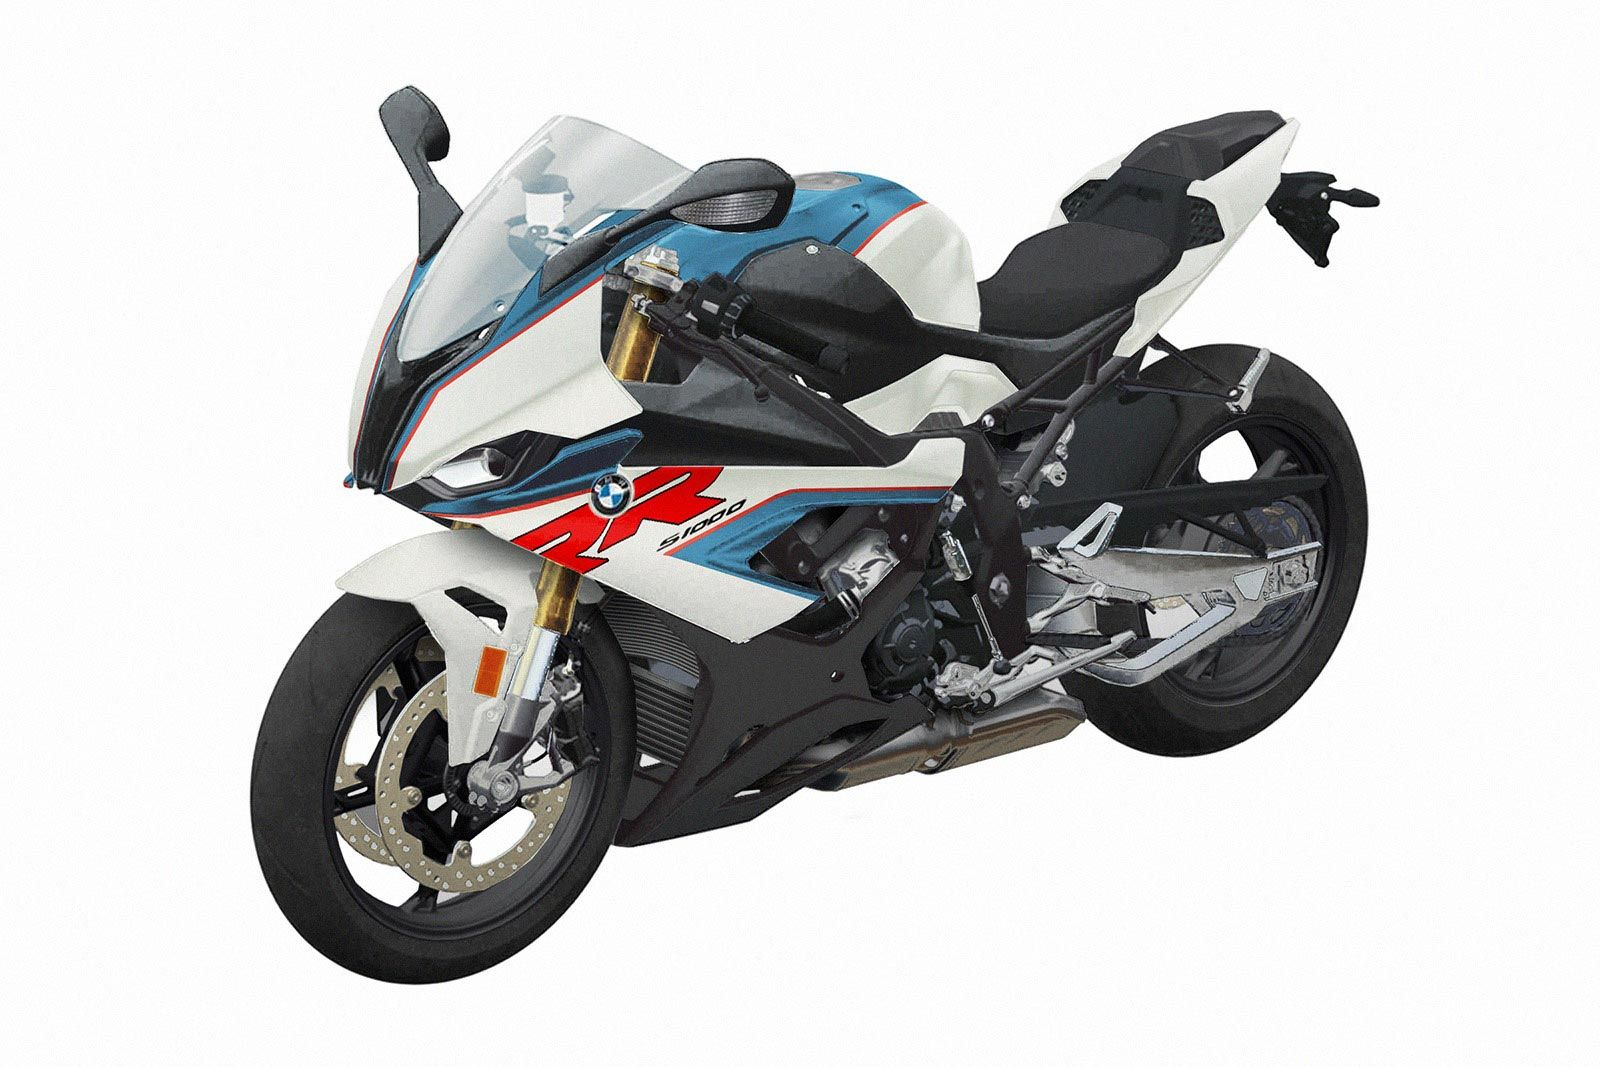 New S1000rr 2019 Dream Bmw S1000rr Bmw Motorcycle Bike